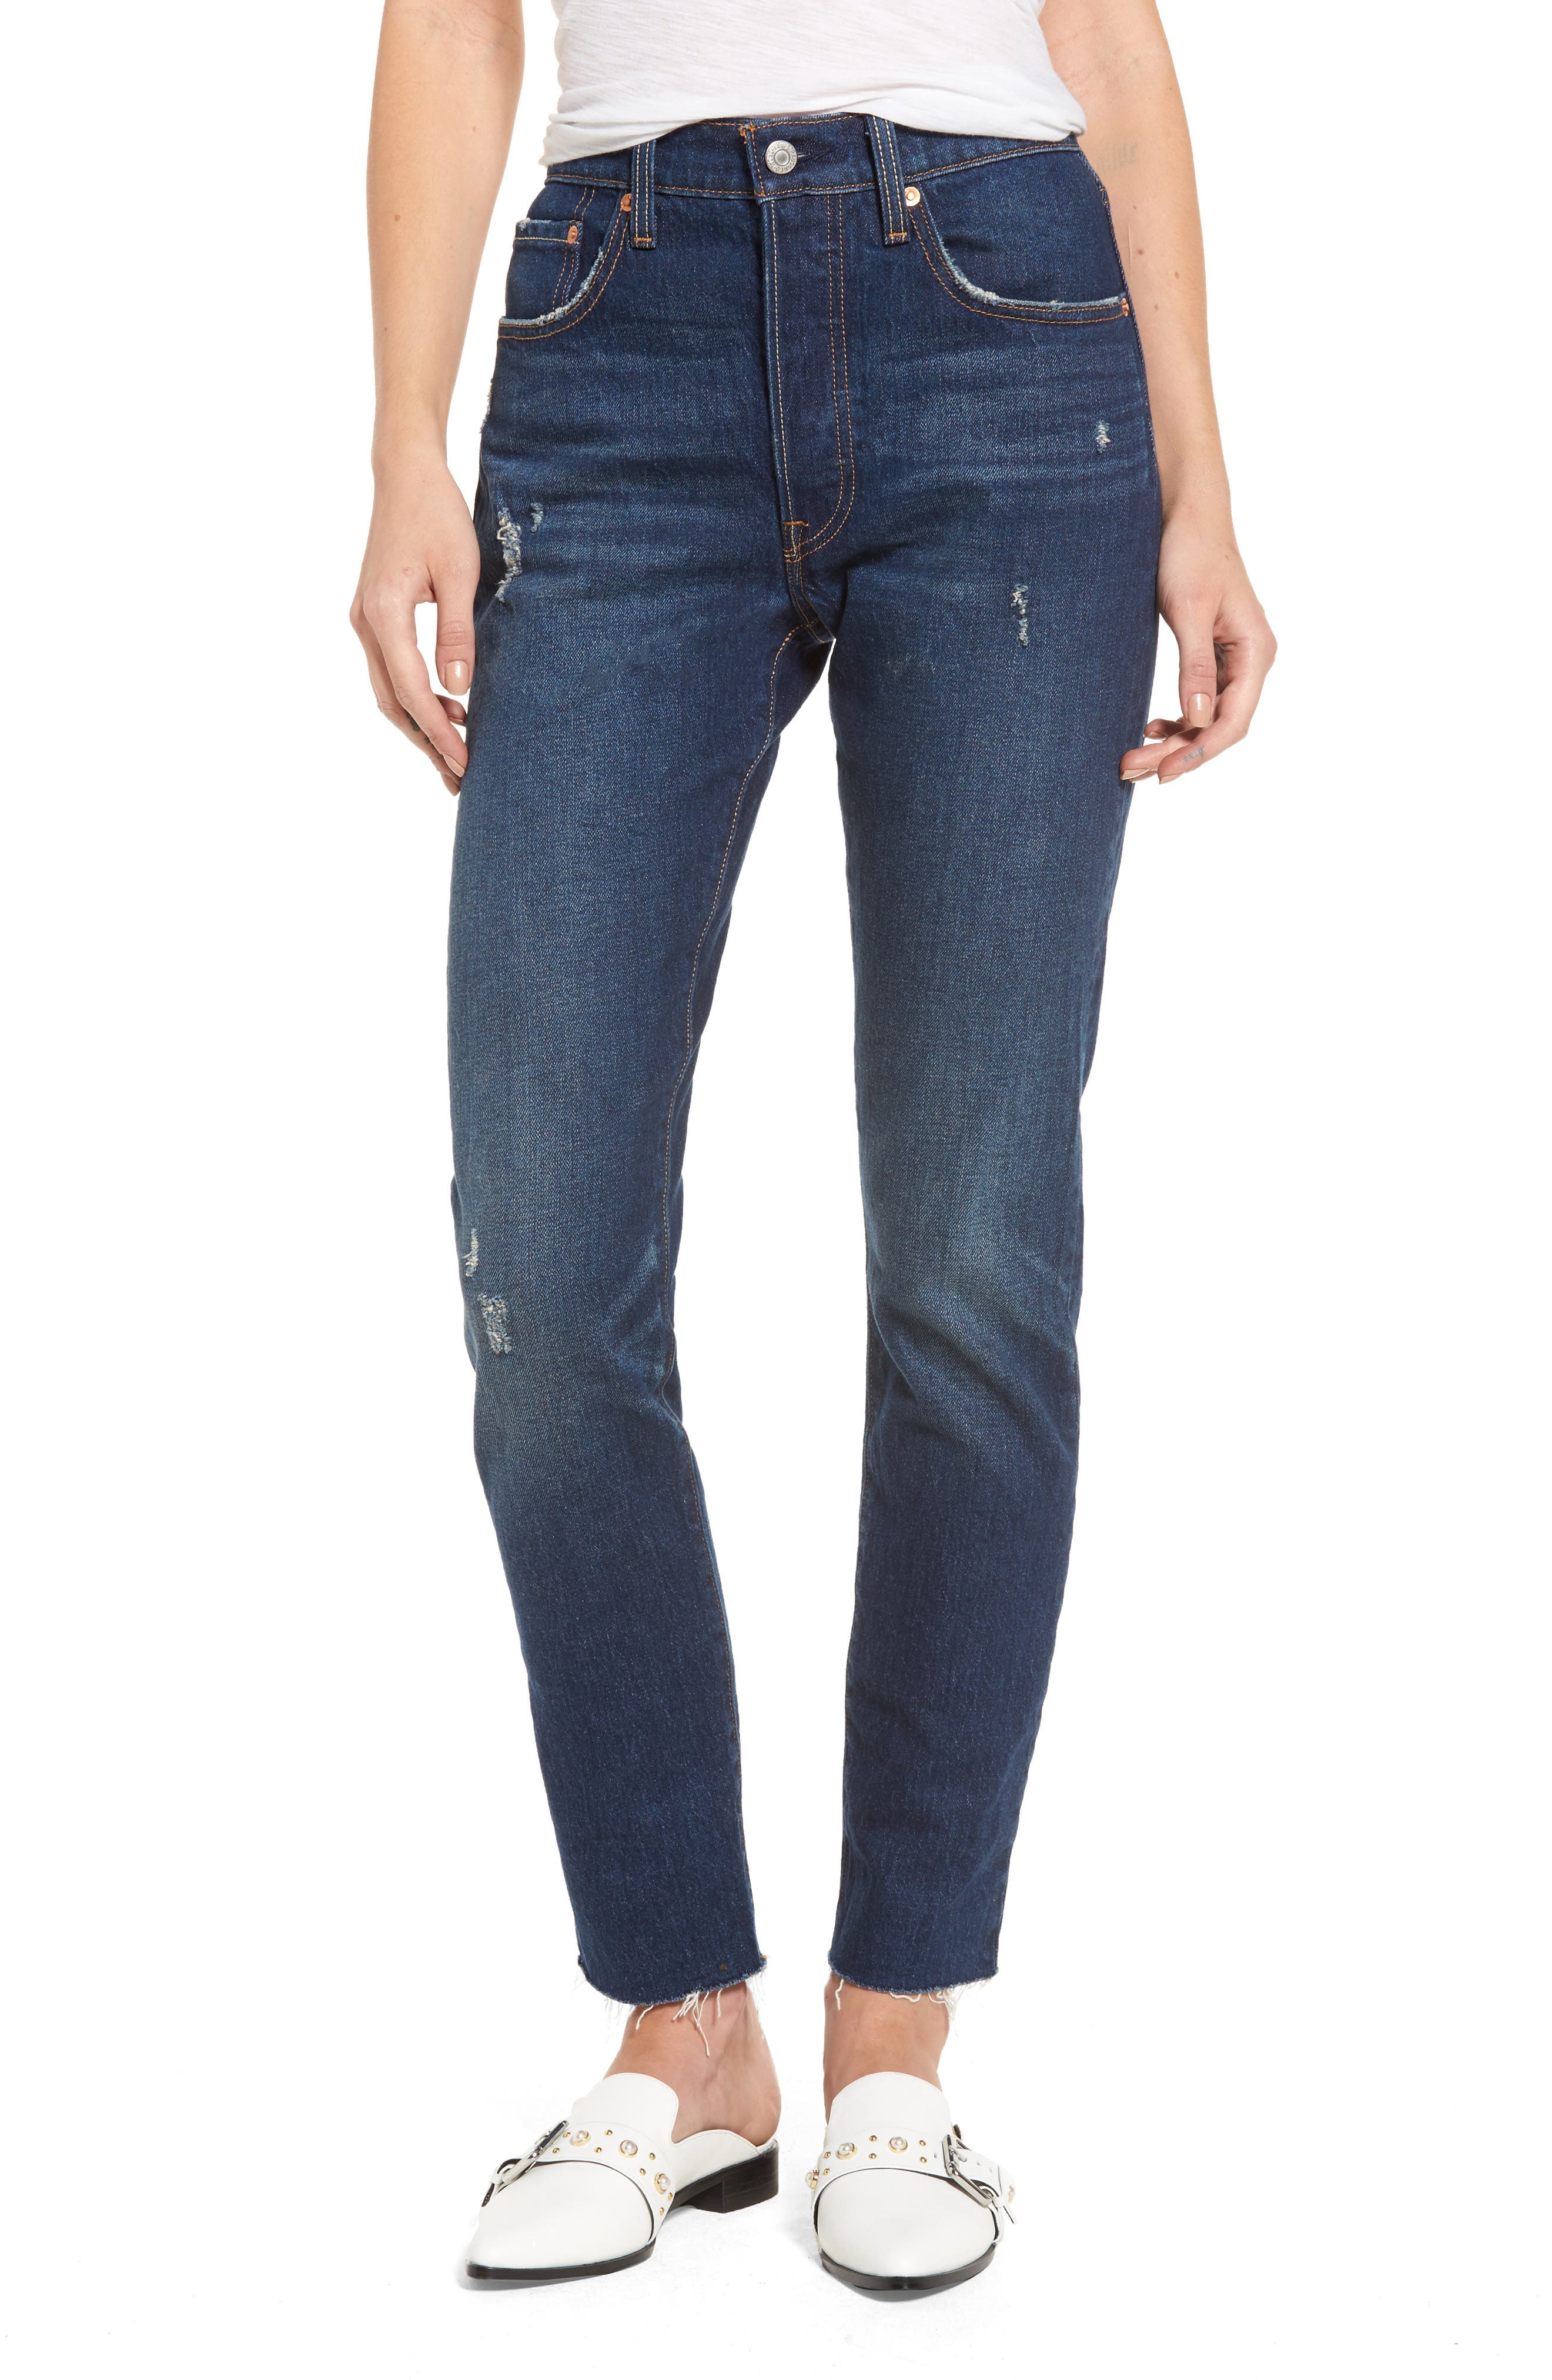 Levis<sup>®</sup> 501 Raw Hem Skinny Jeans,                         Main,                         color, Song For Forever